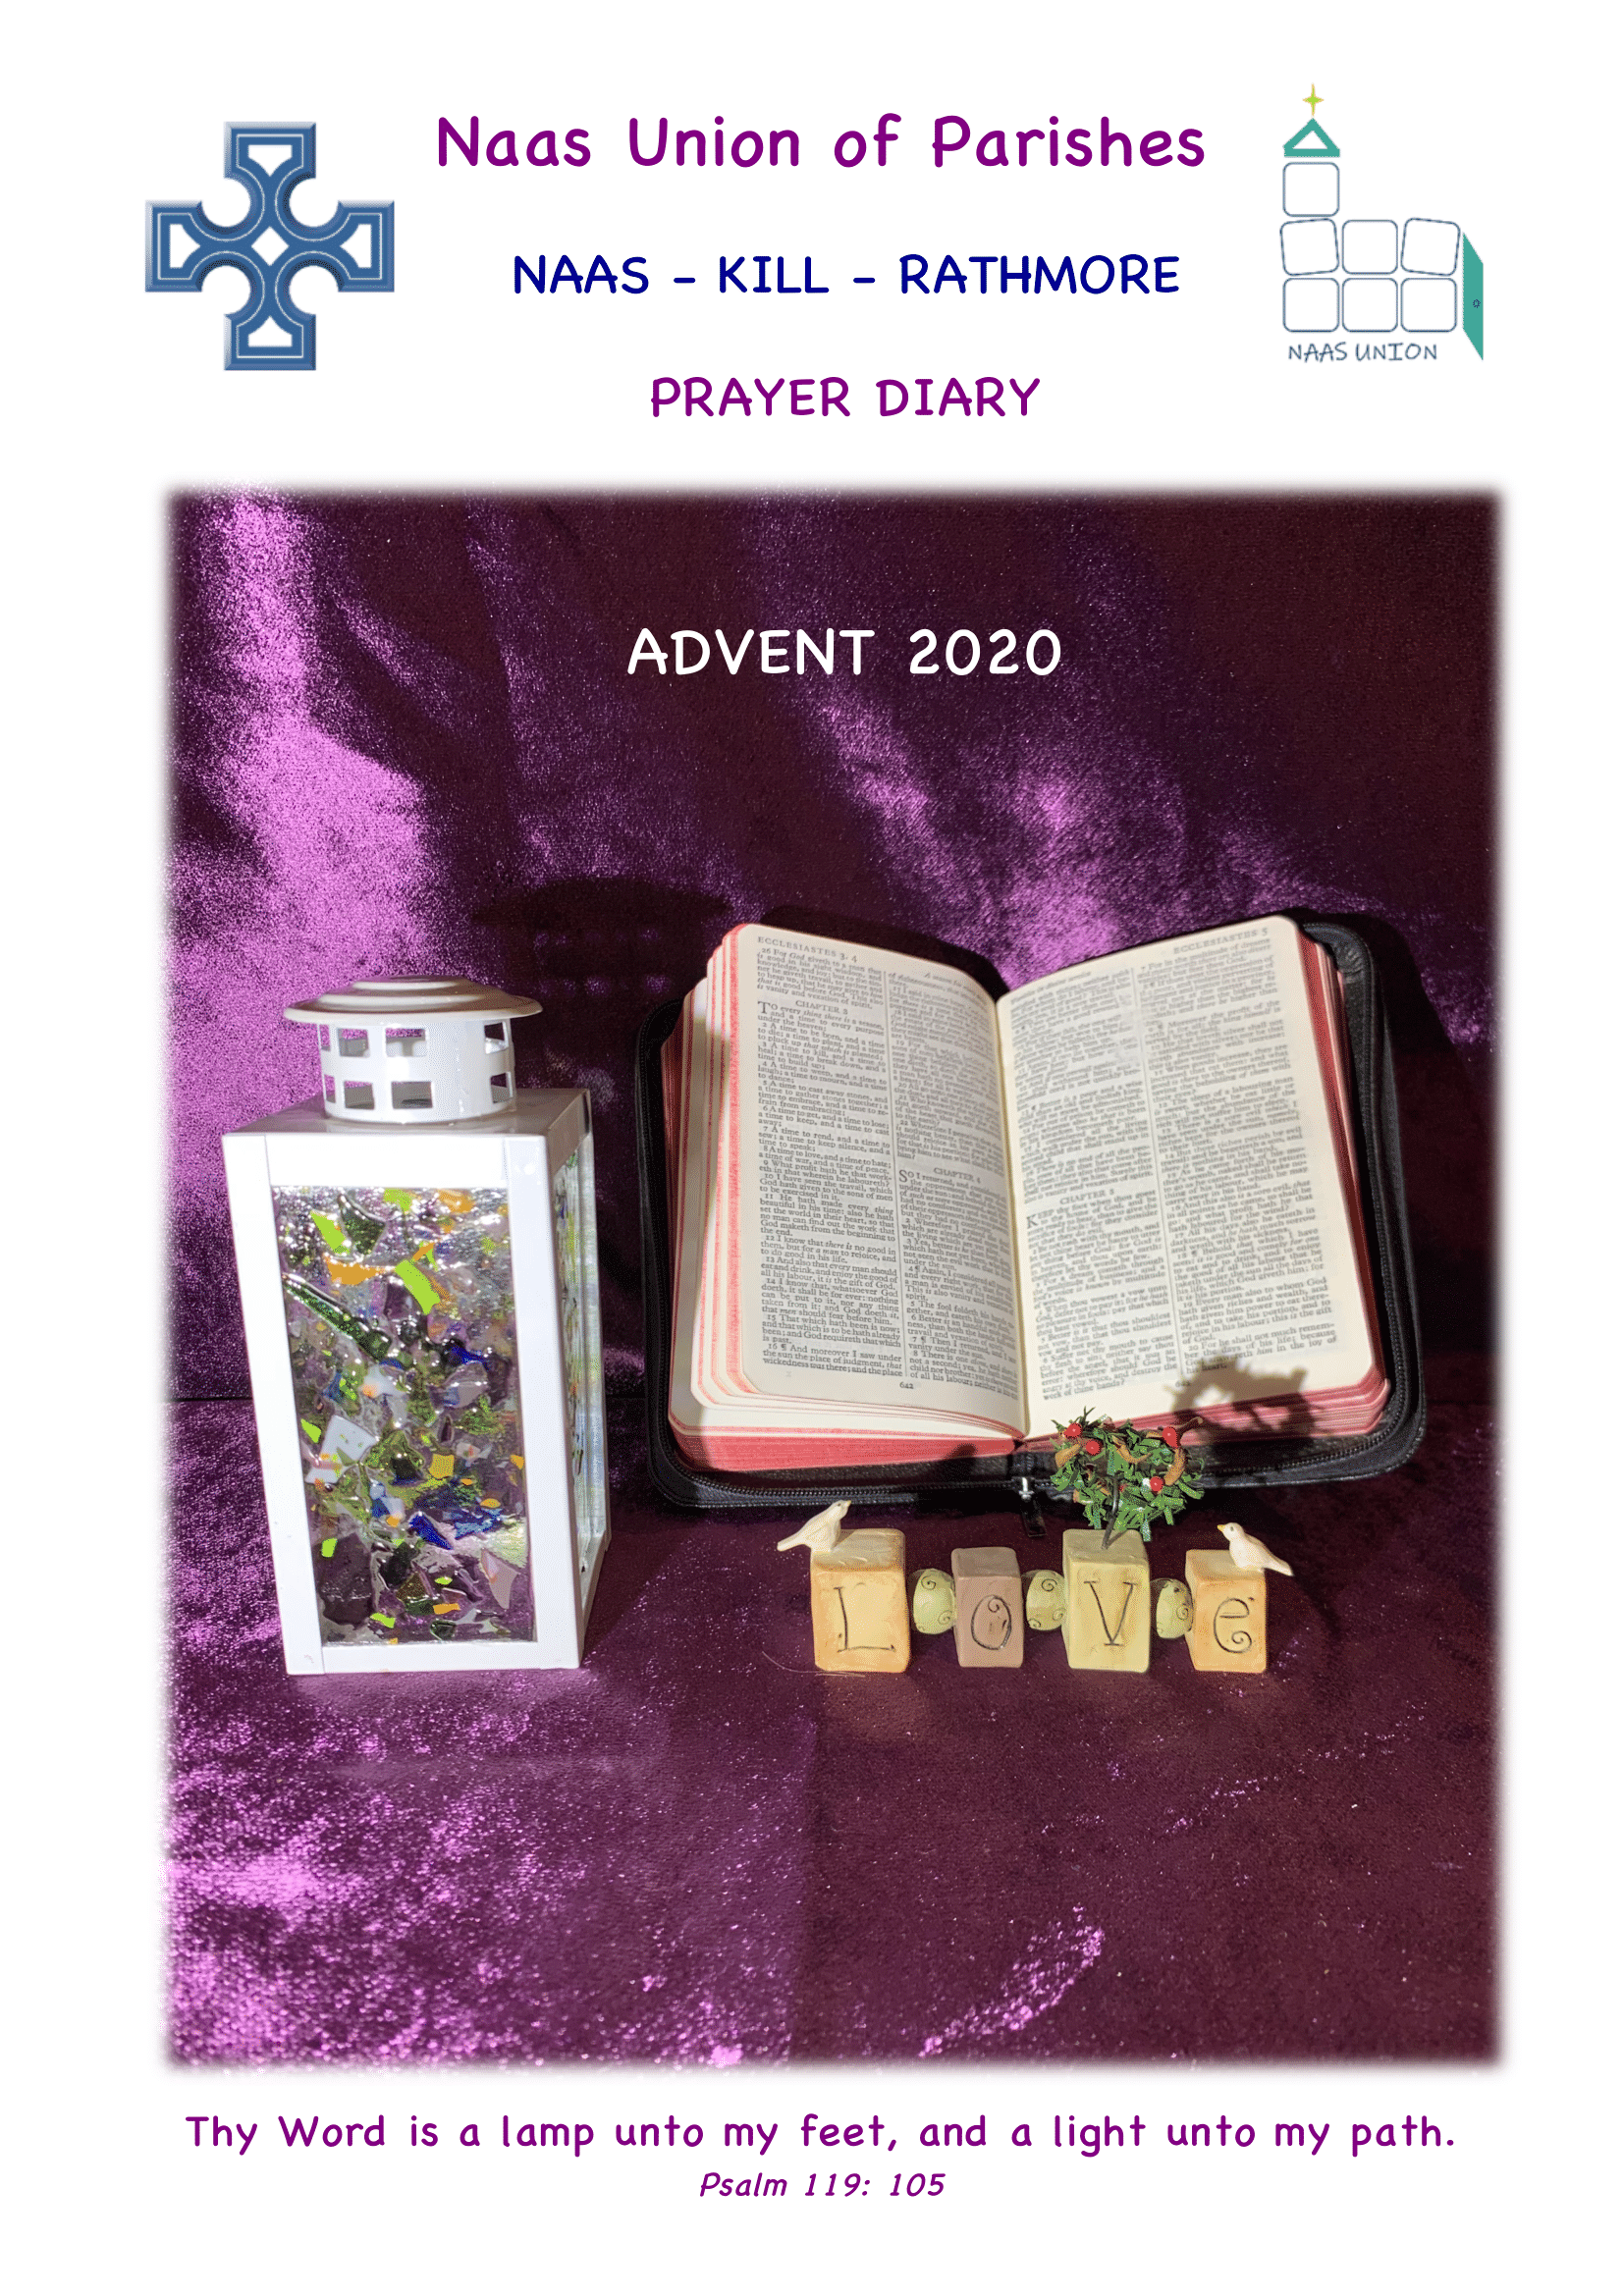 Look out for your Advent Prayer Diary from Team Union Focus